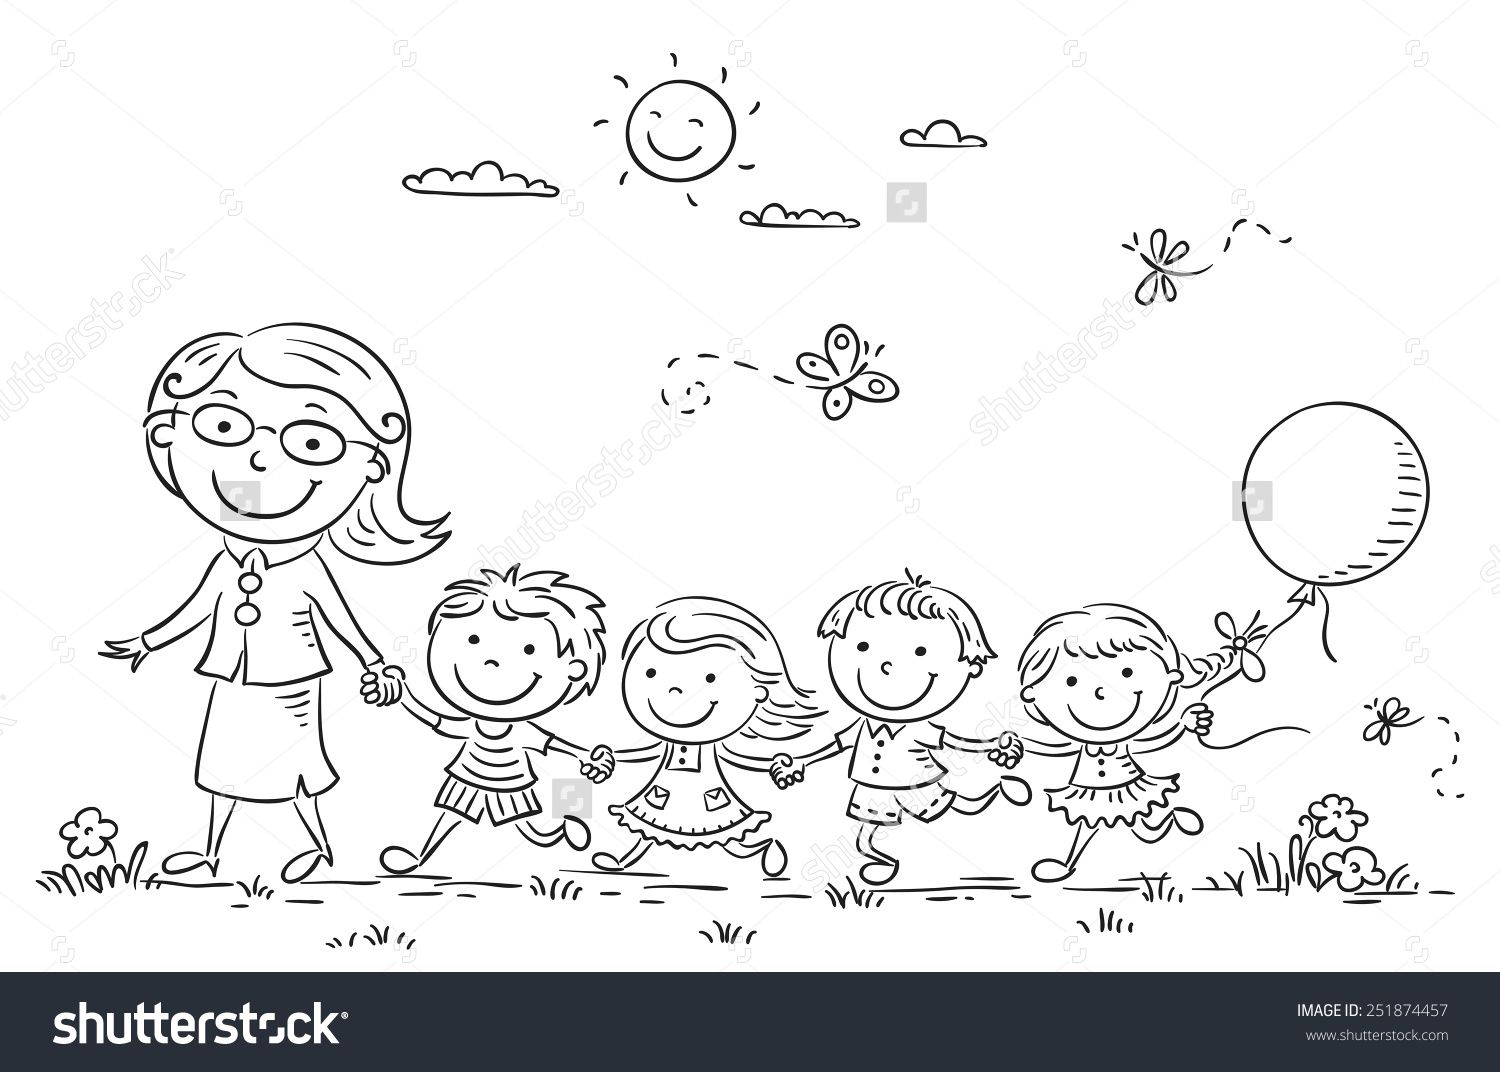 Kids And Their Teacher On A Walk In The Kindergarten Black And White Outline